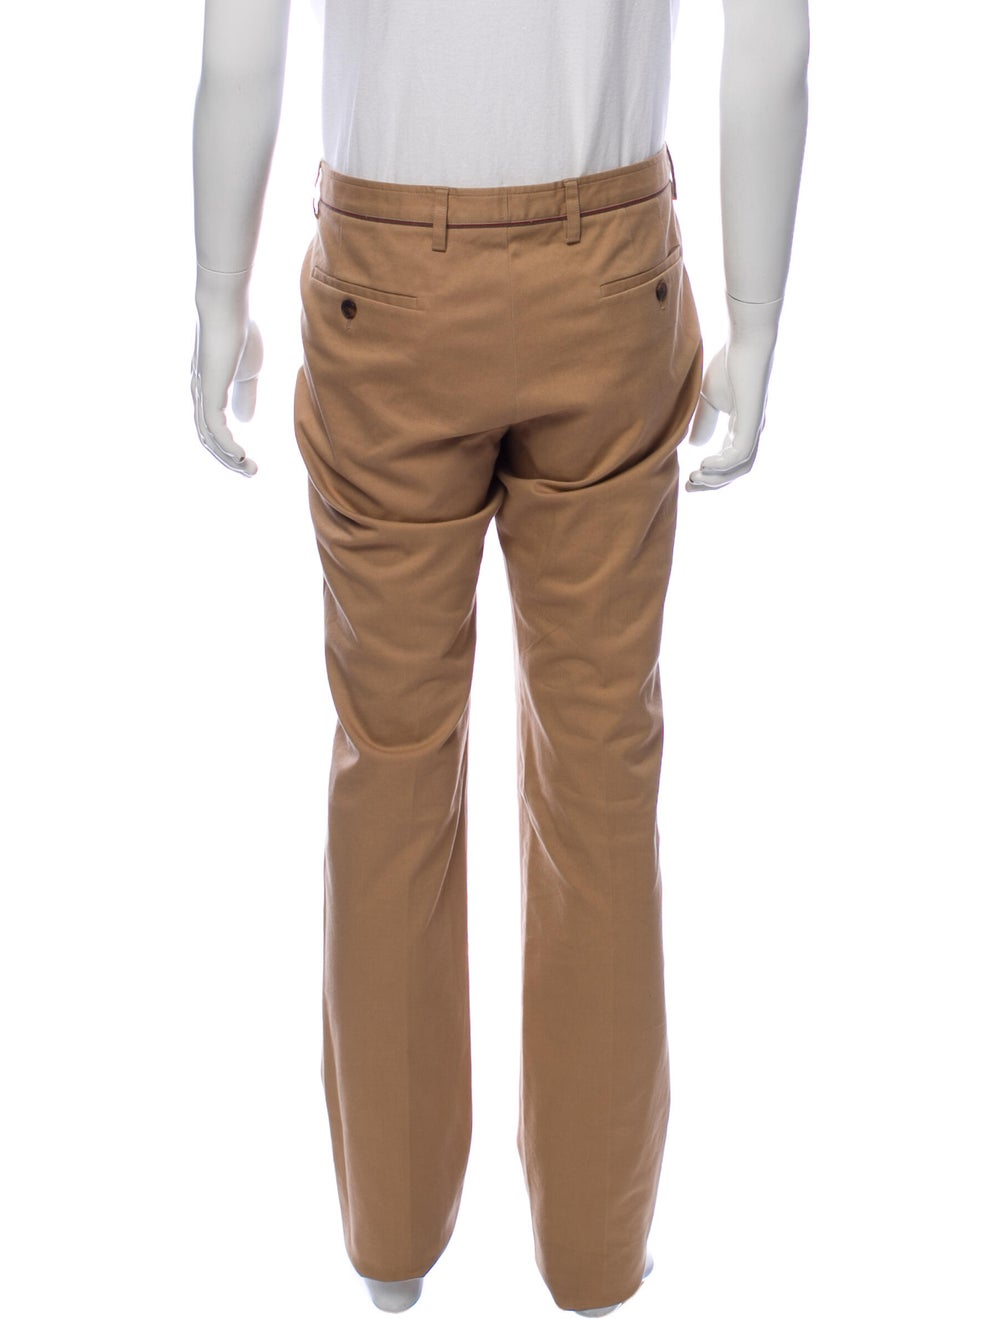 Gucci Web Accent Chinos - image 3